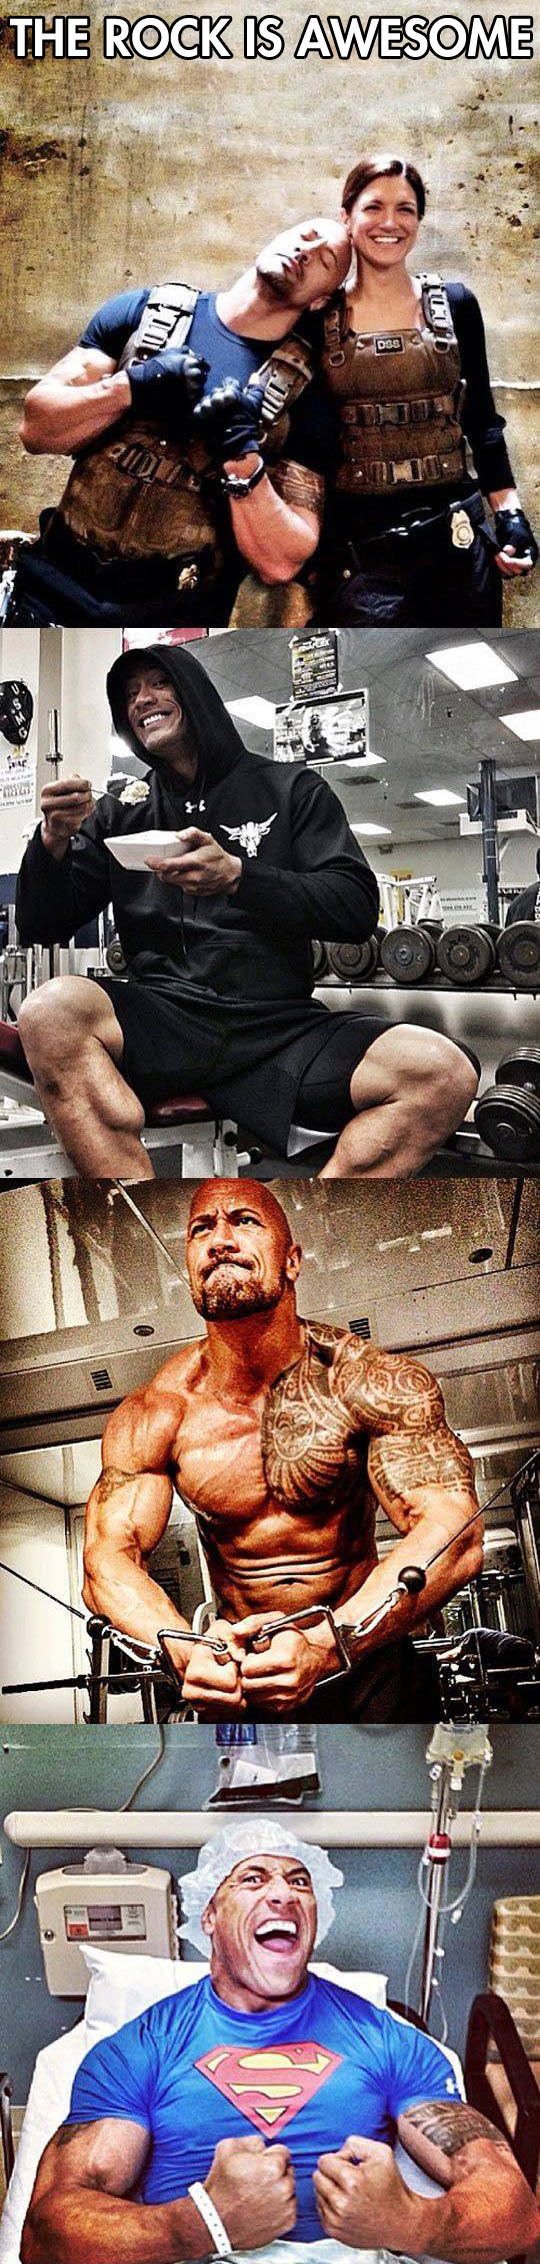 funny-Rock-Dwayne-Johnson-movies-actor